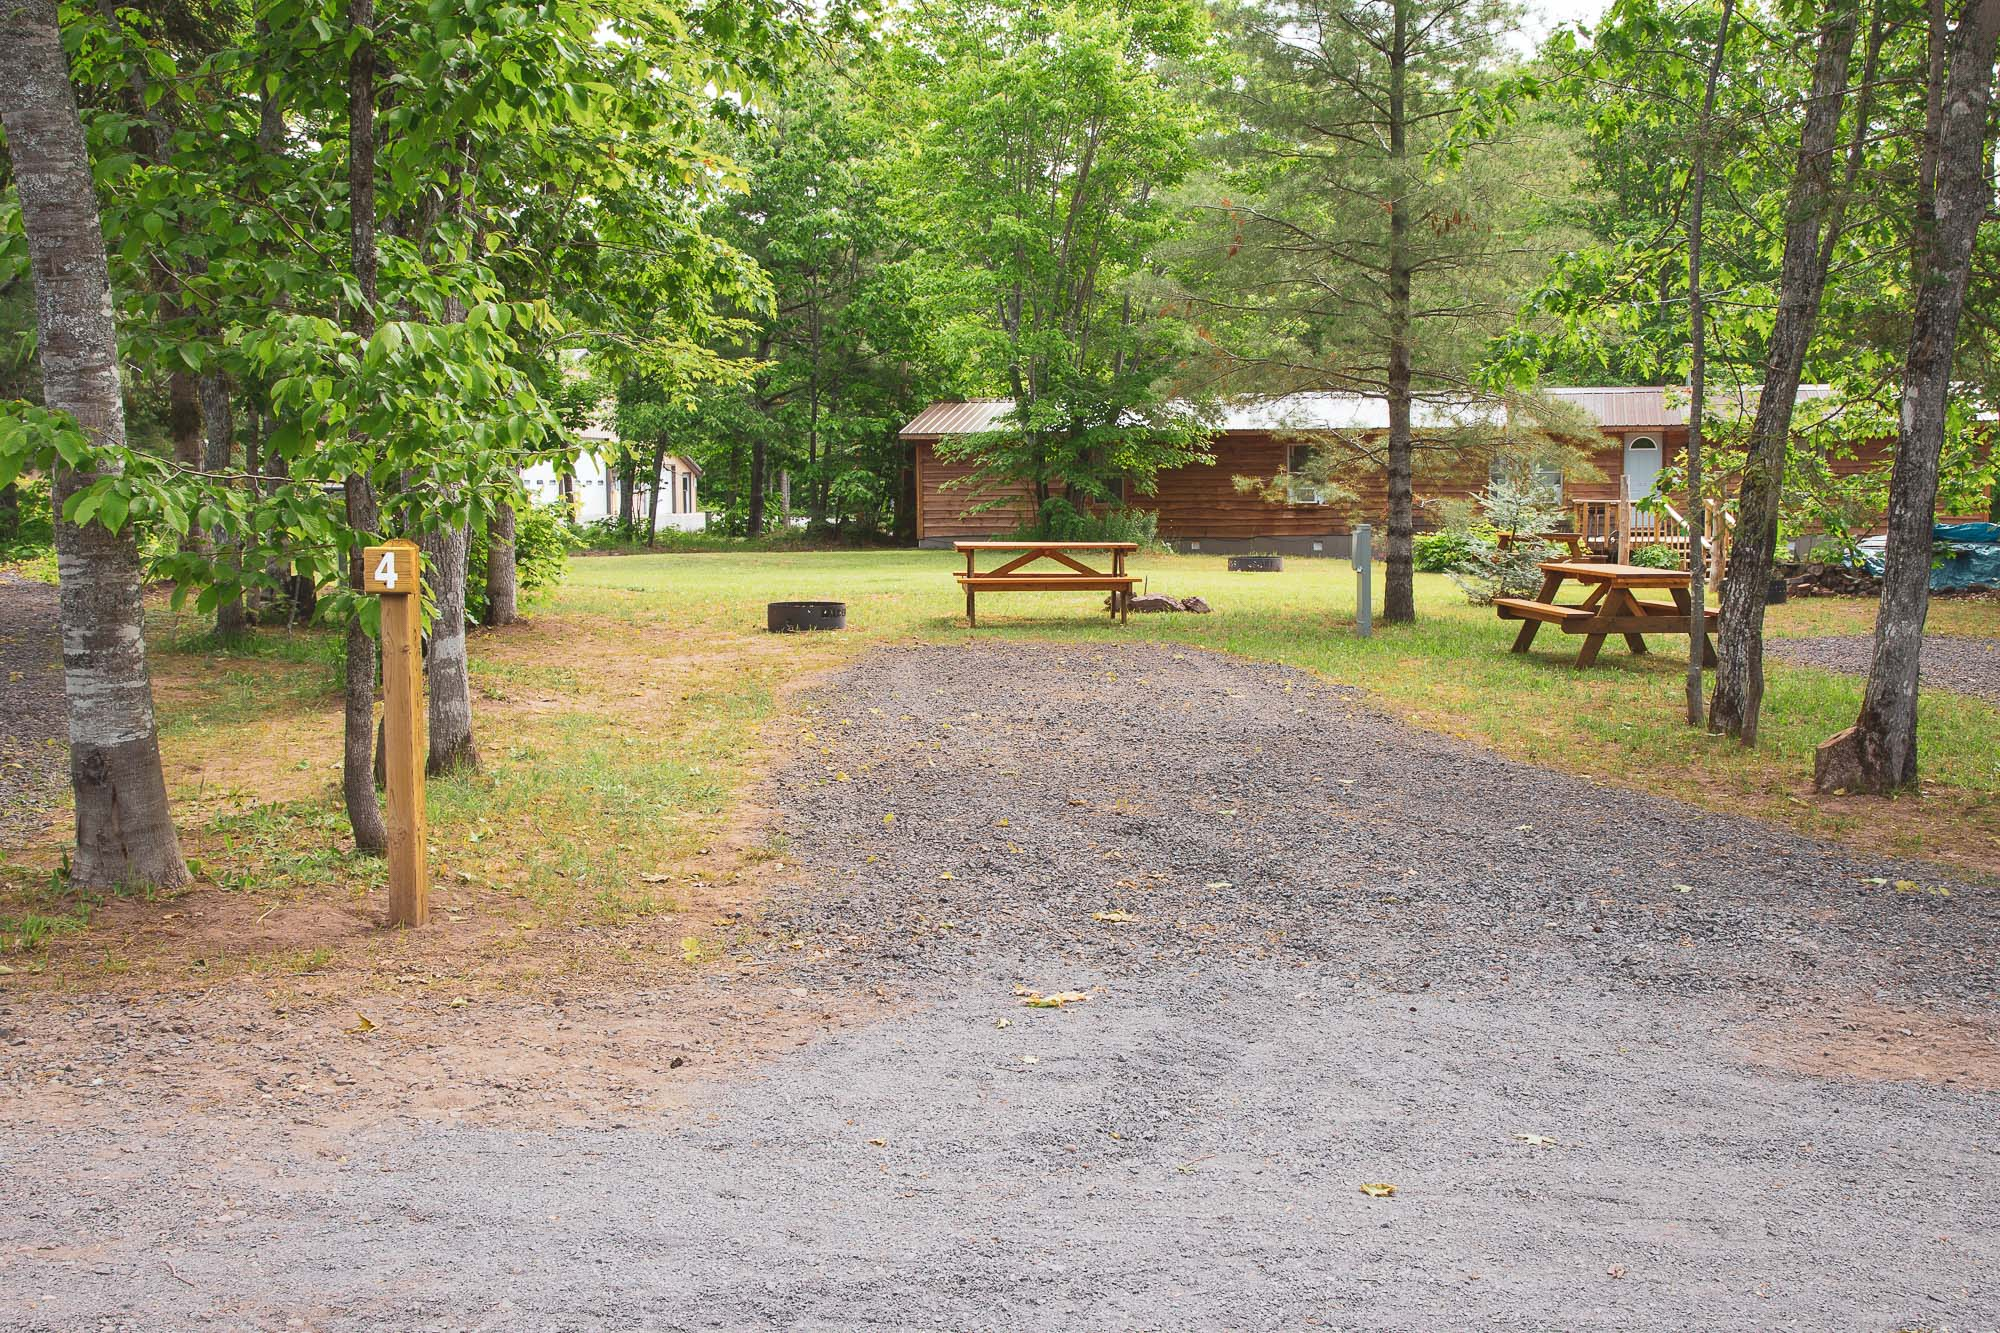 Photo of Campground Site 4 at the Wilderness Resort in Lac La Belle Michigan